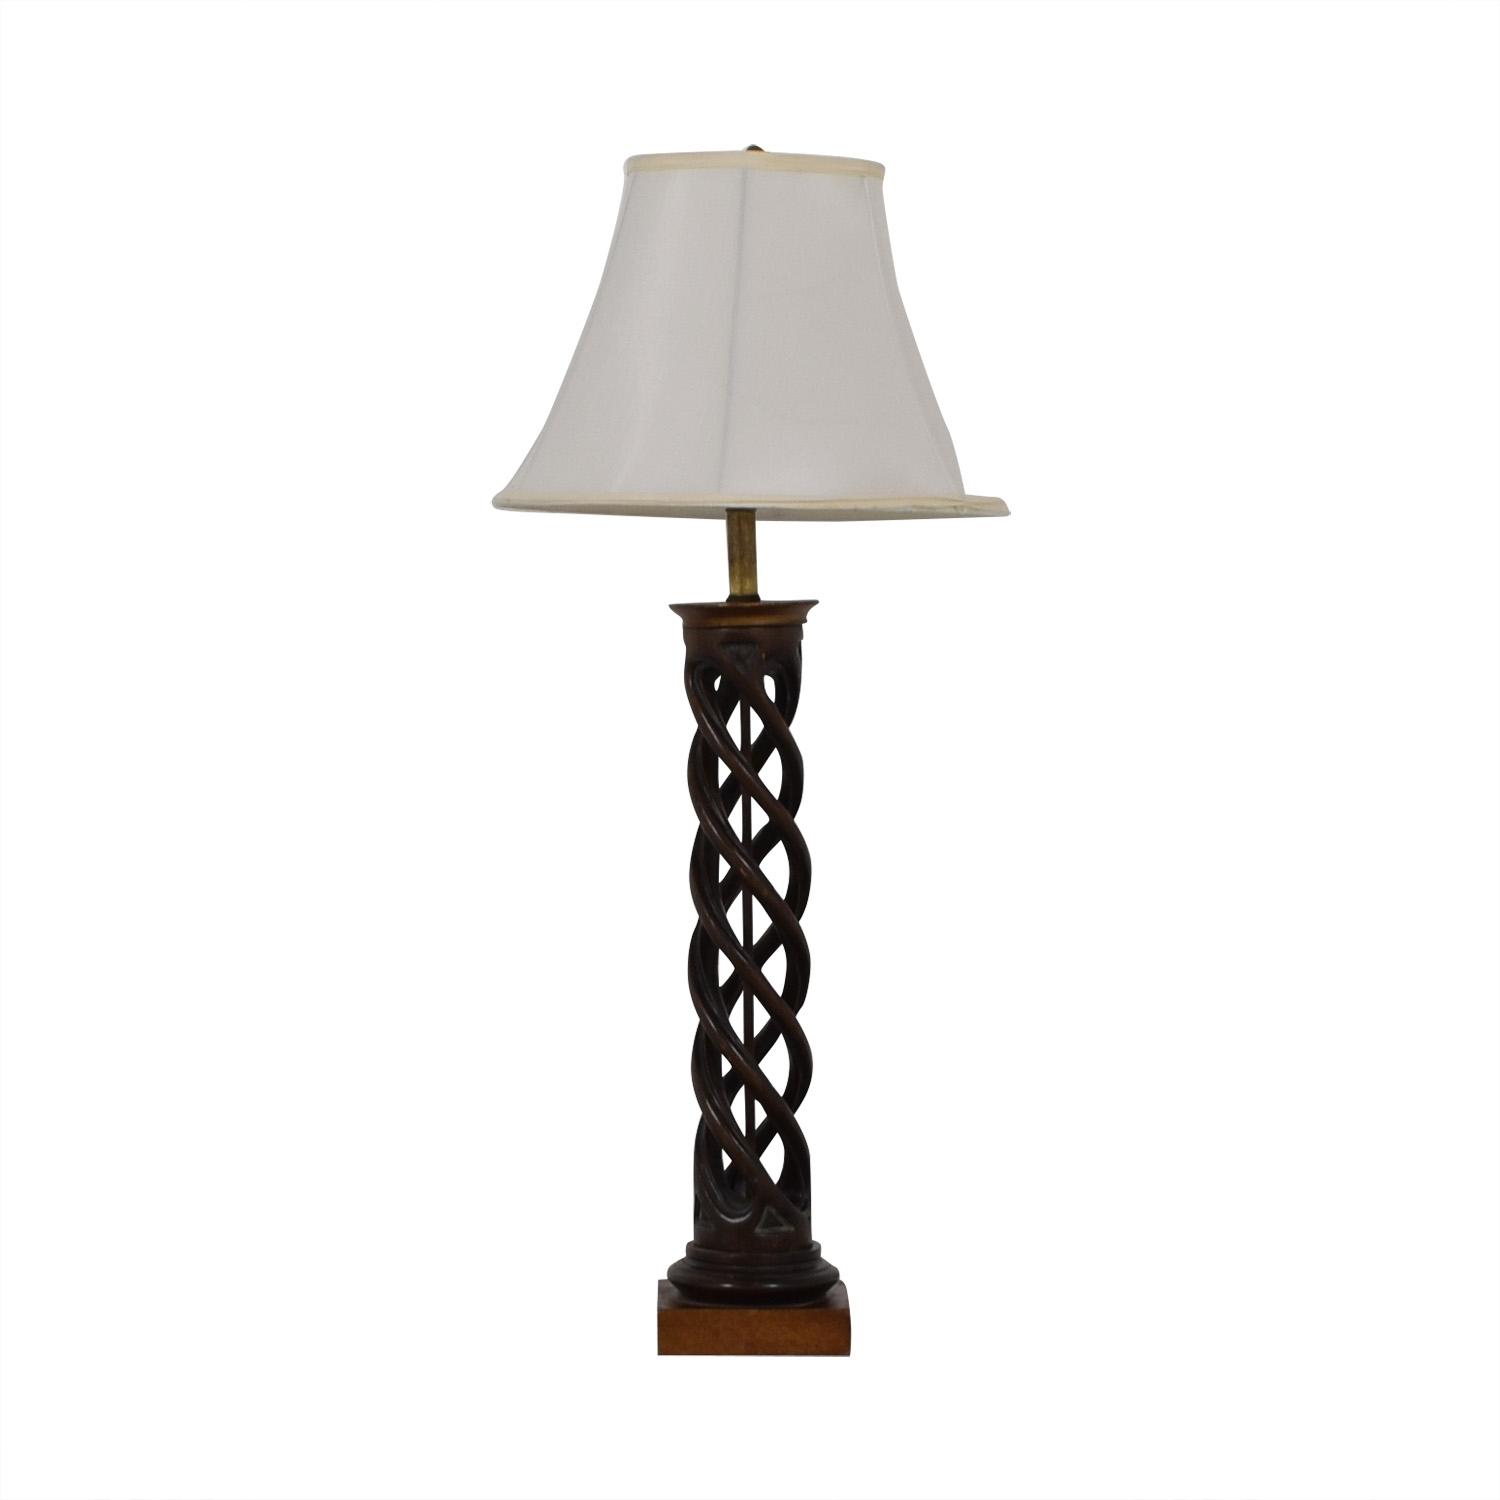 buy  Twisting Table Lamp online